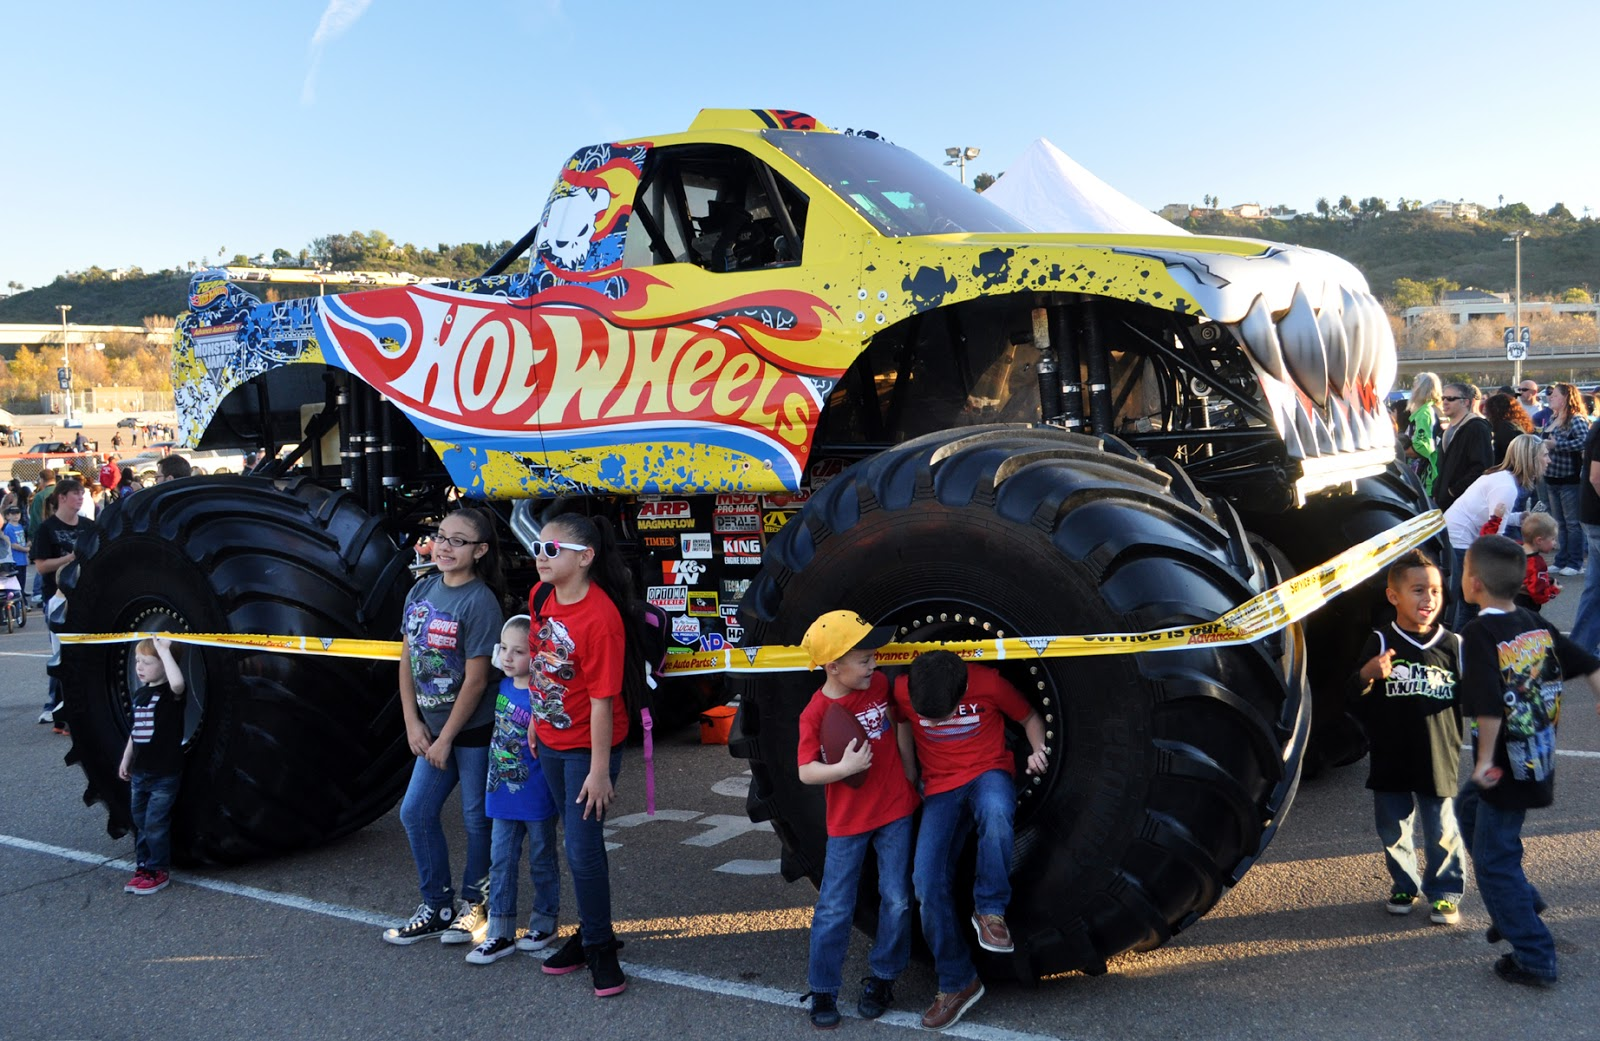 Monster jam san diego 2013 in the pit party area that you can get free admittance to if you stop by a ford dealership and pick up a pass